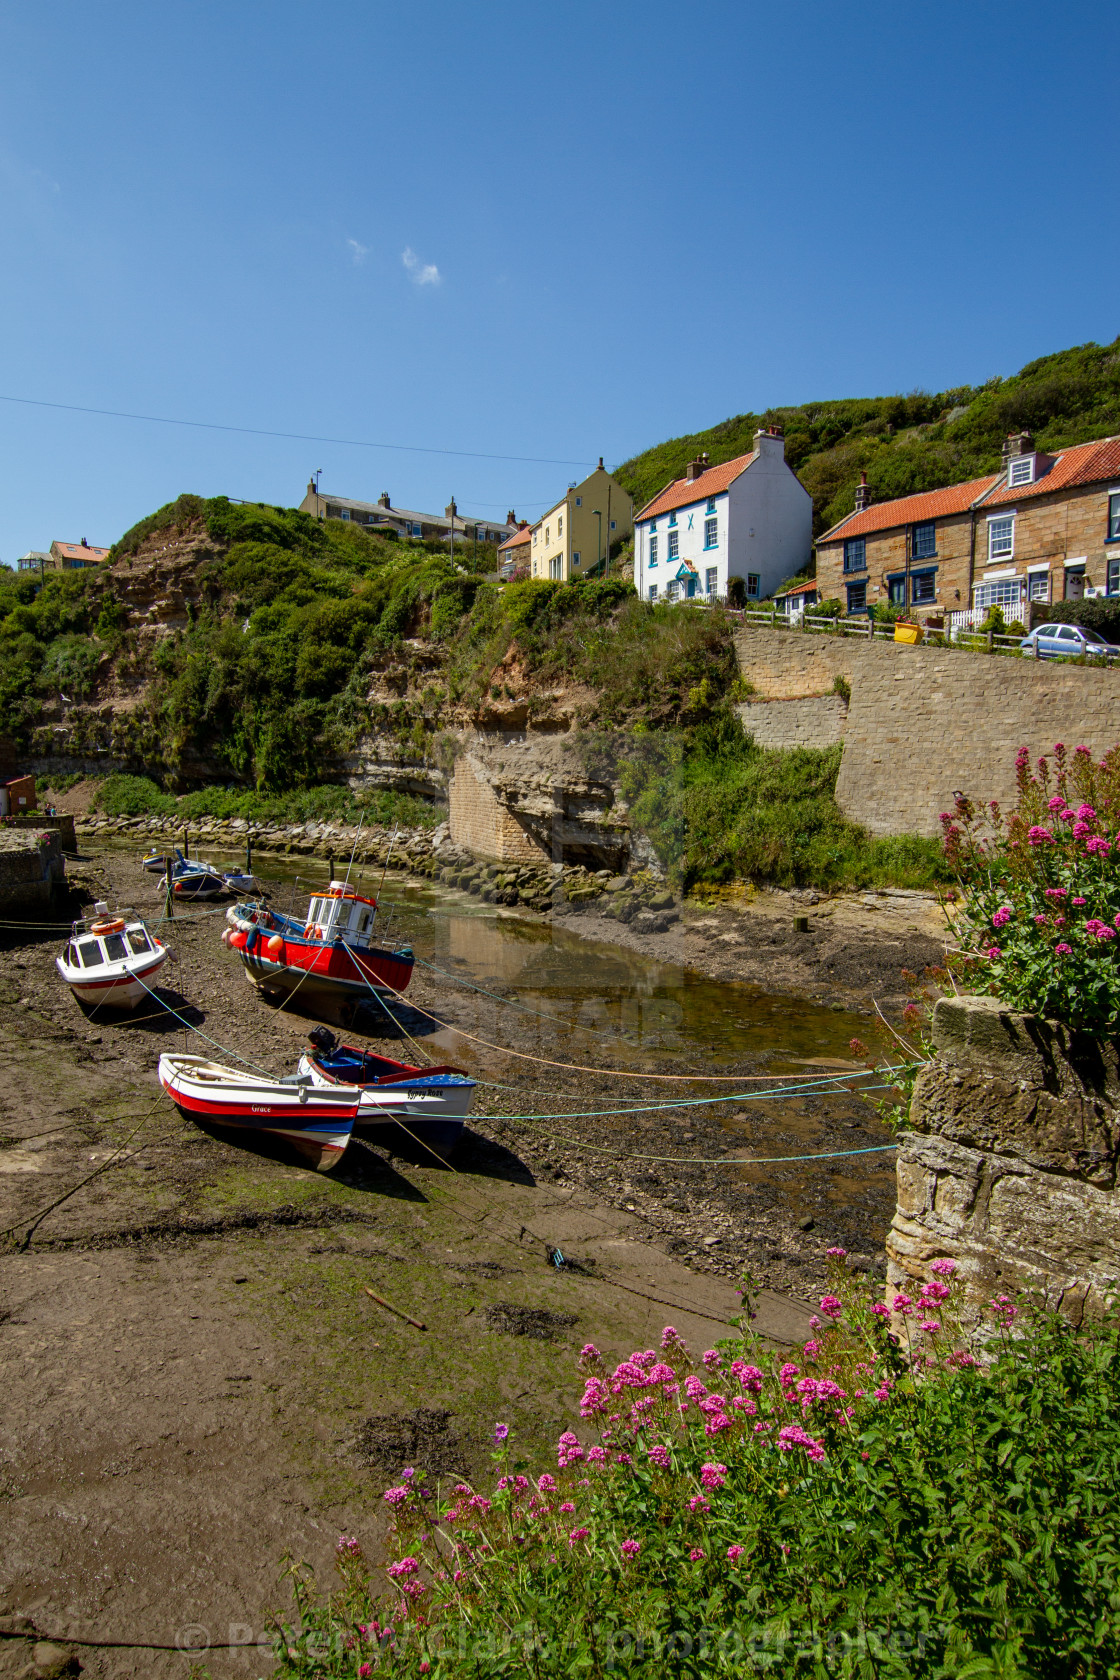 """""""Fishing Cobbles Moored in Staithes Beck, Fishermens Cottages in the Background. Staithes, Yorkshire, UK."""" stock image"""